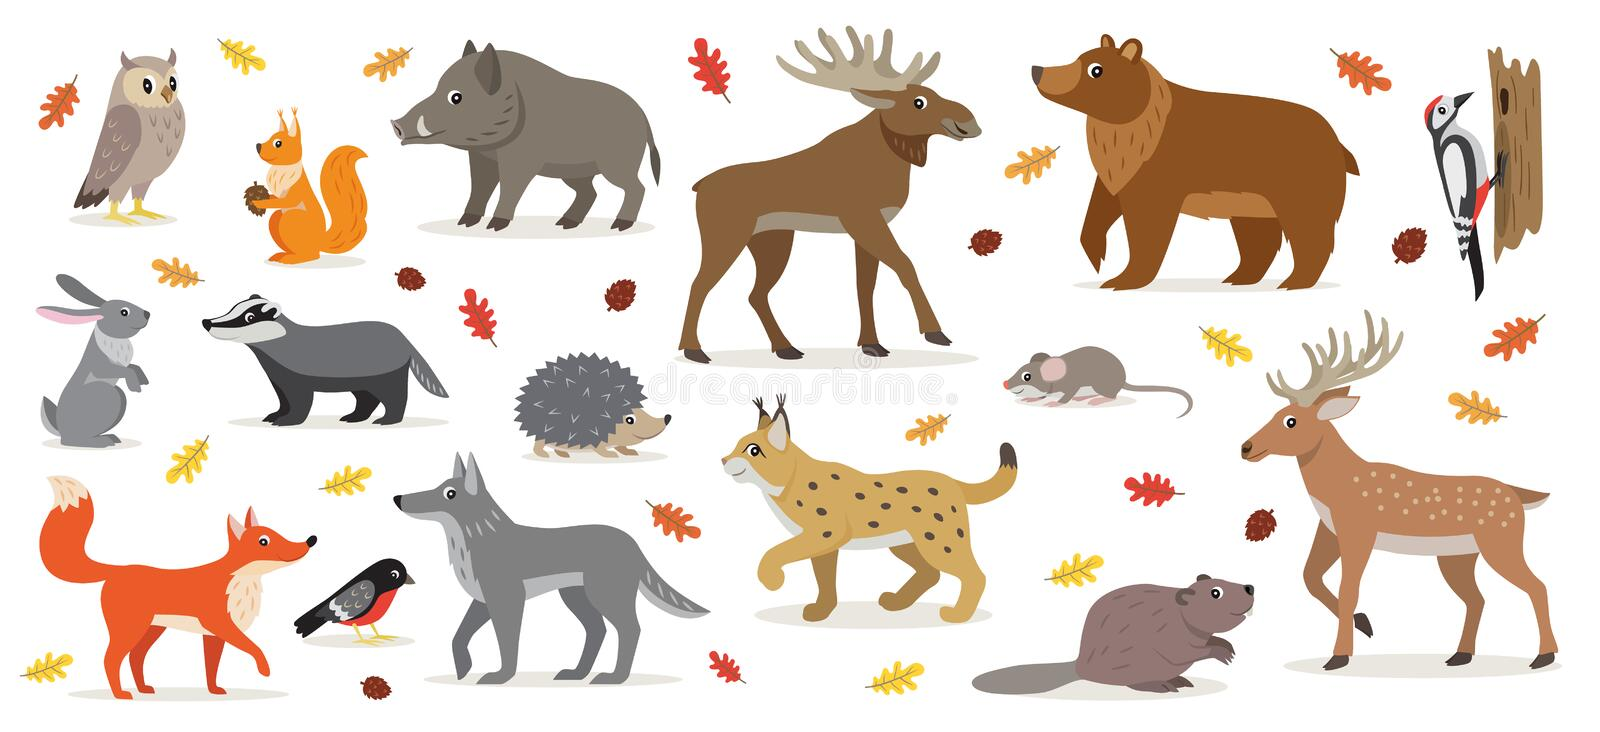 Big set of forest woodland animals isolated vector illustration. Big set of forest woodland animals isolated on white, owl, squirrel, hare, bear, fox, wolf stock illustration